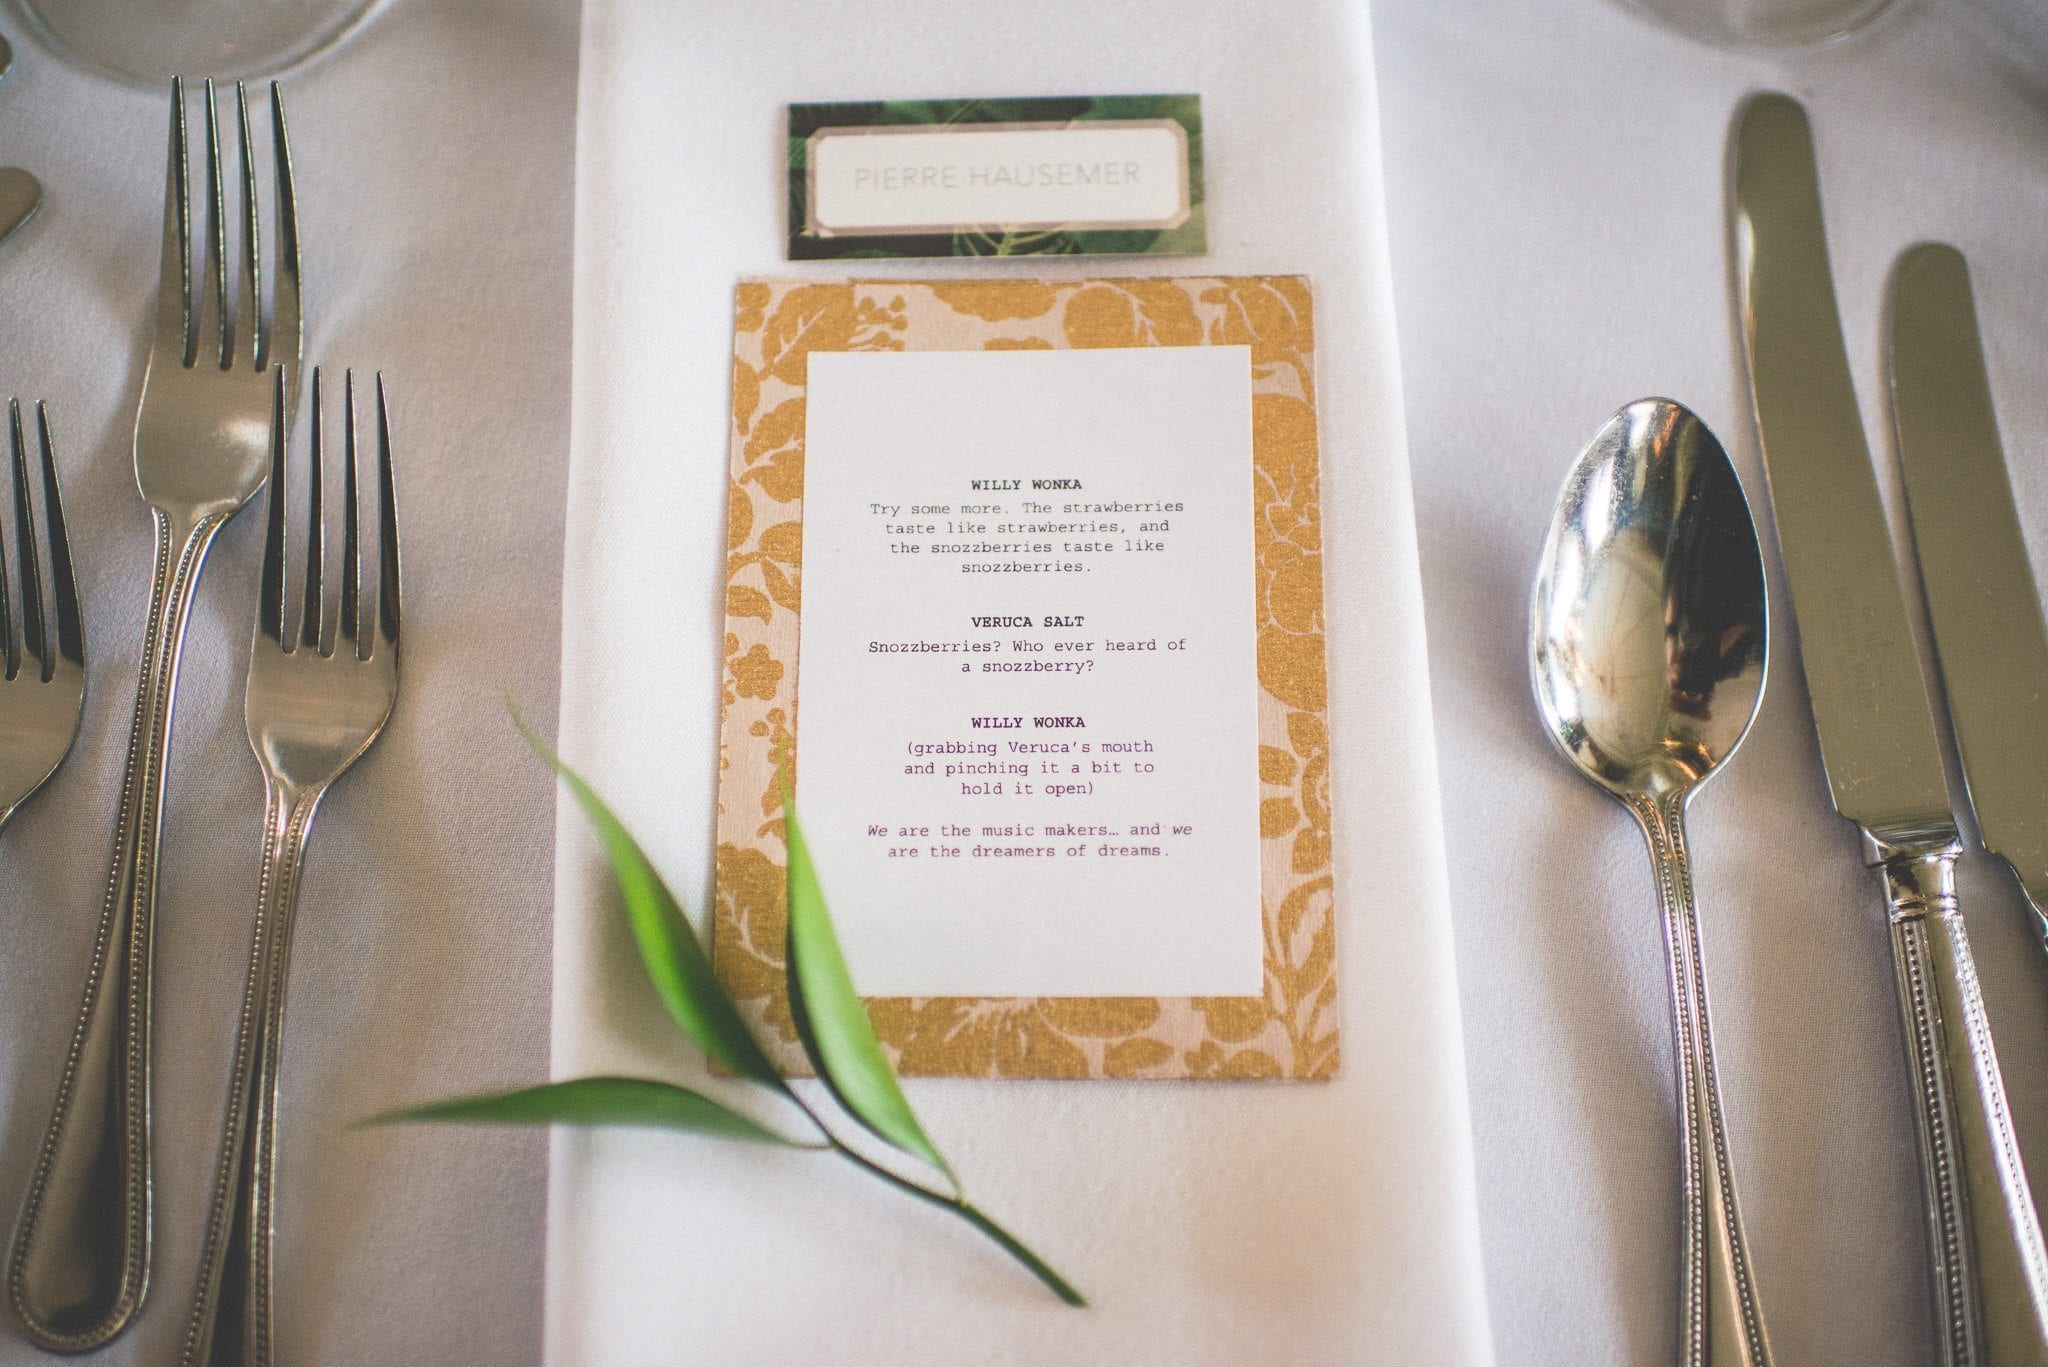 A close up shot of a guest's place setting, showing an individual film quotation - this one is from Willy Wonka and the Chocolate Factory